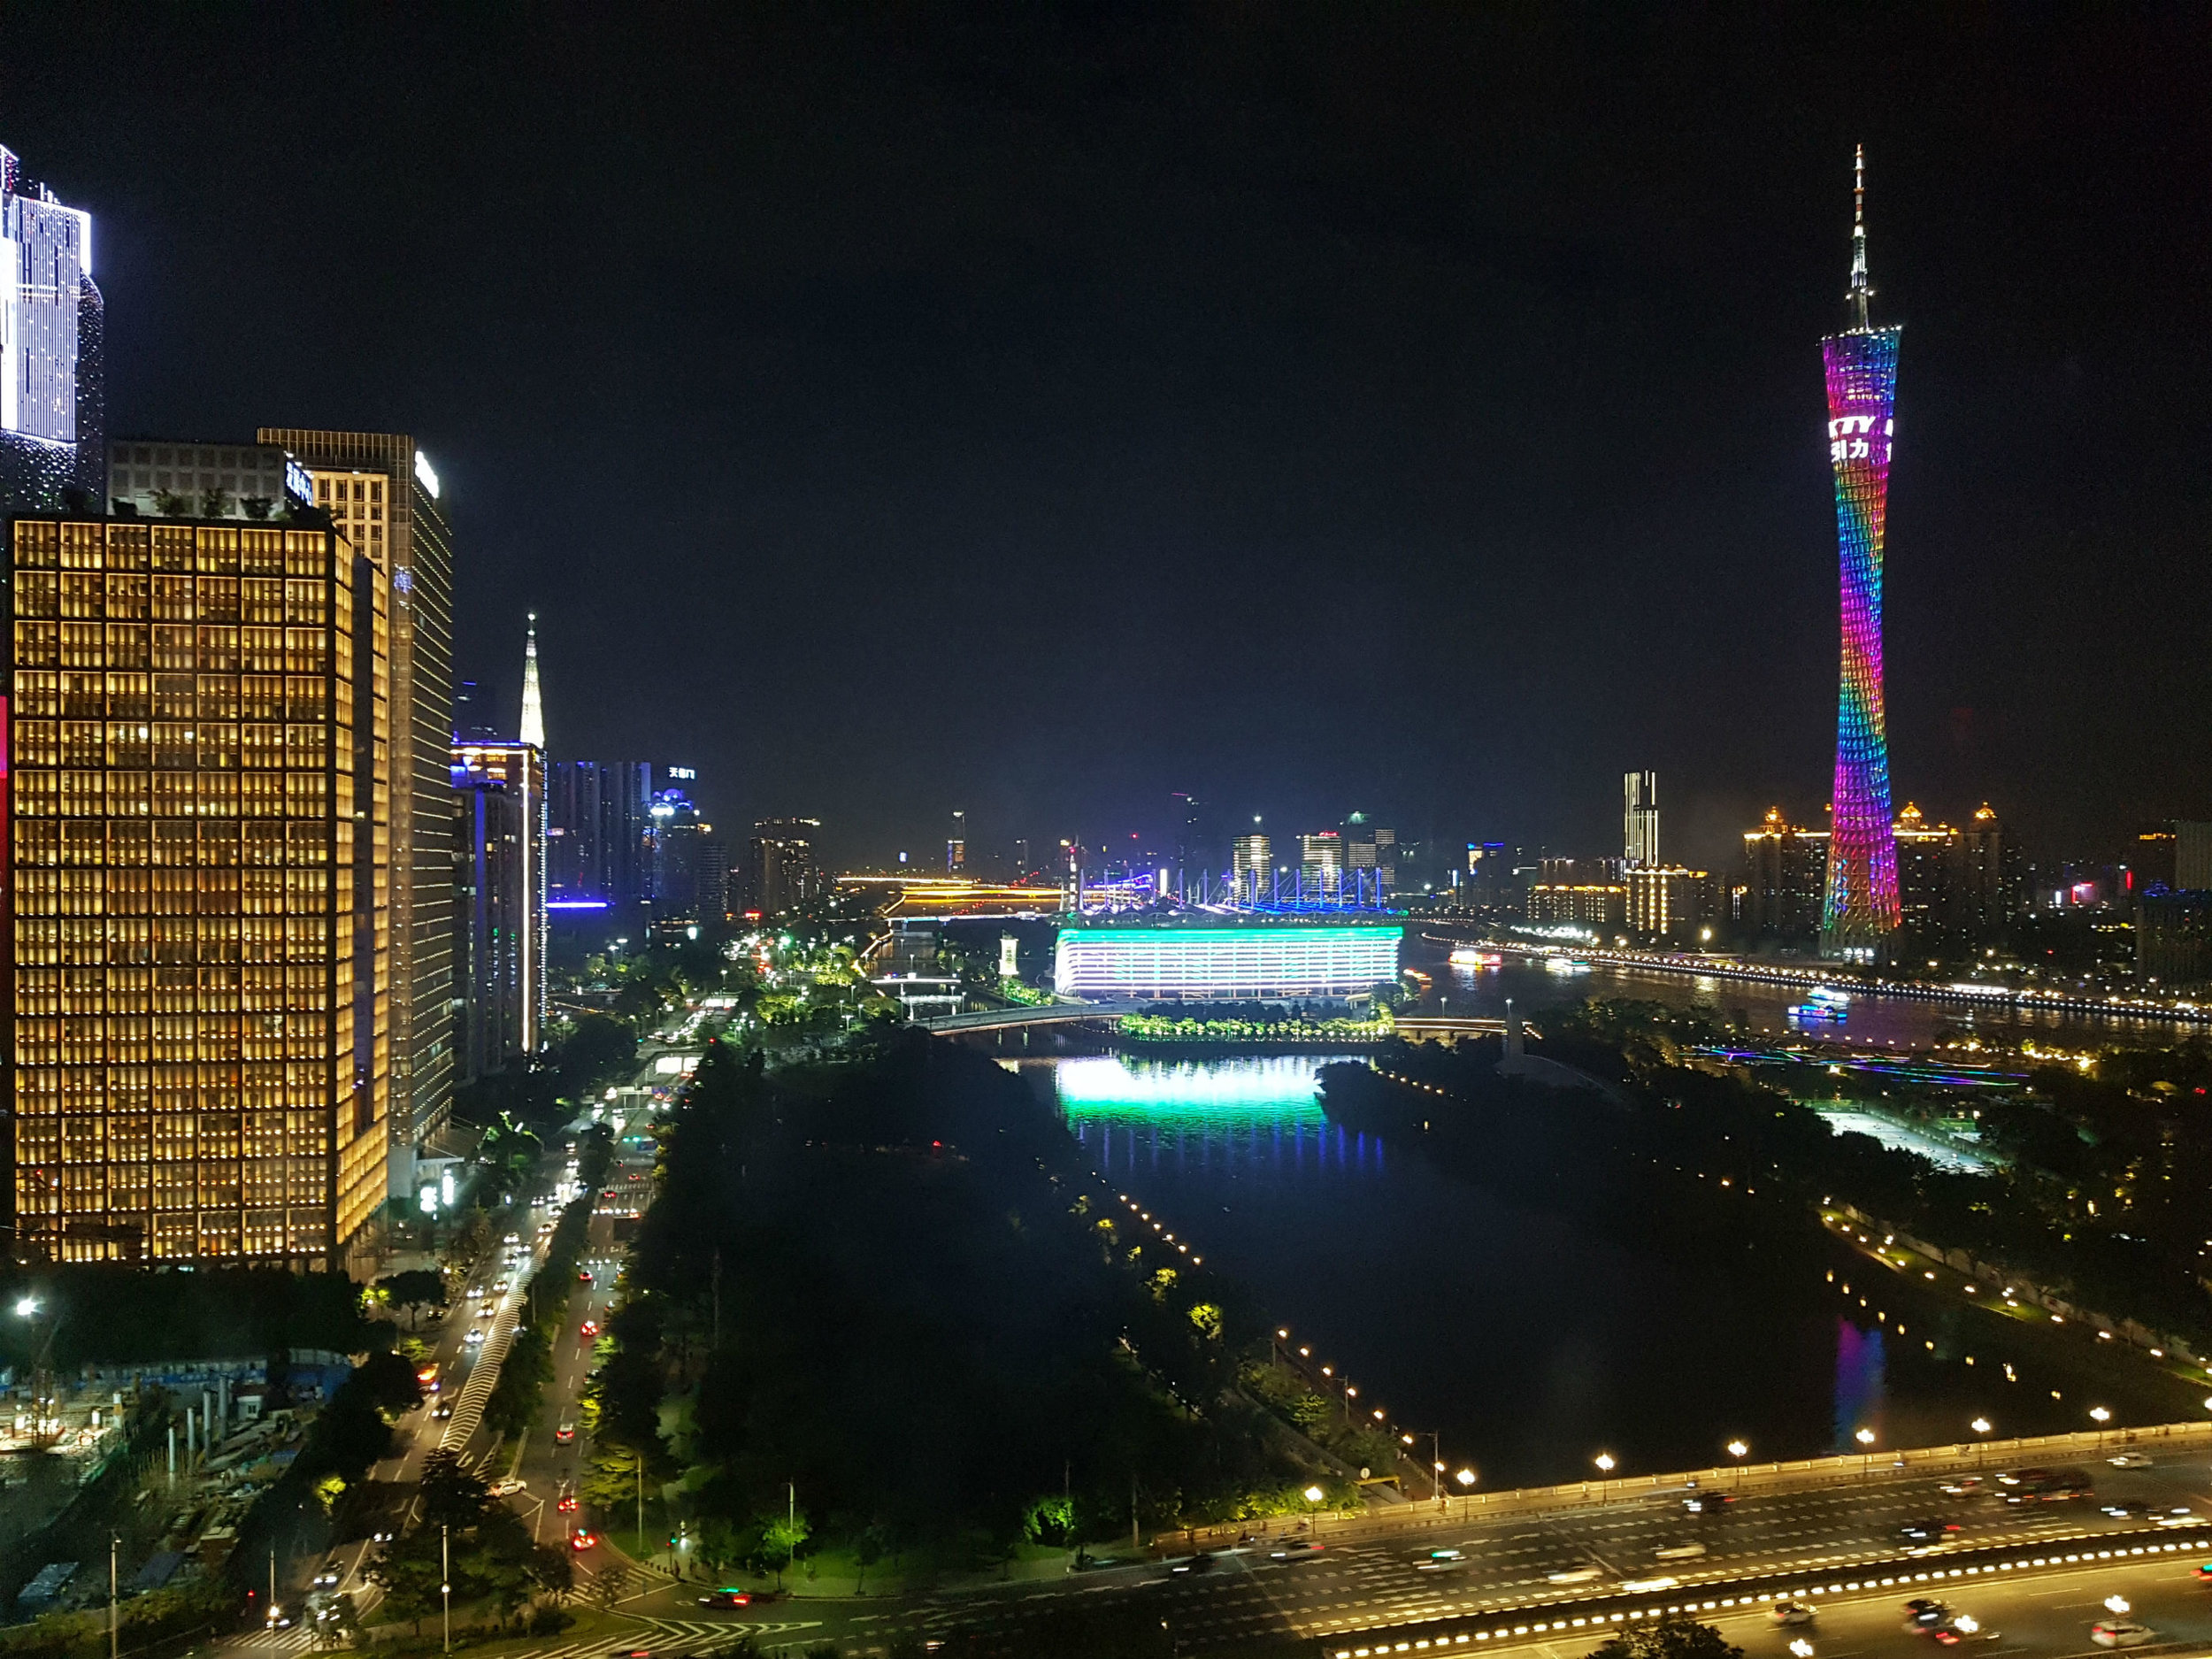 An eye-opening experience, the Skyline Guangzhou - note 650-meter high Cantor Tower